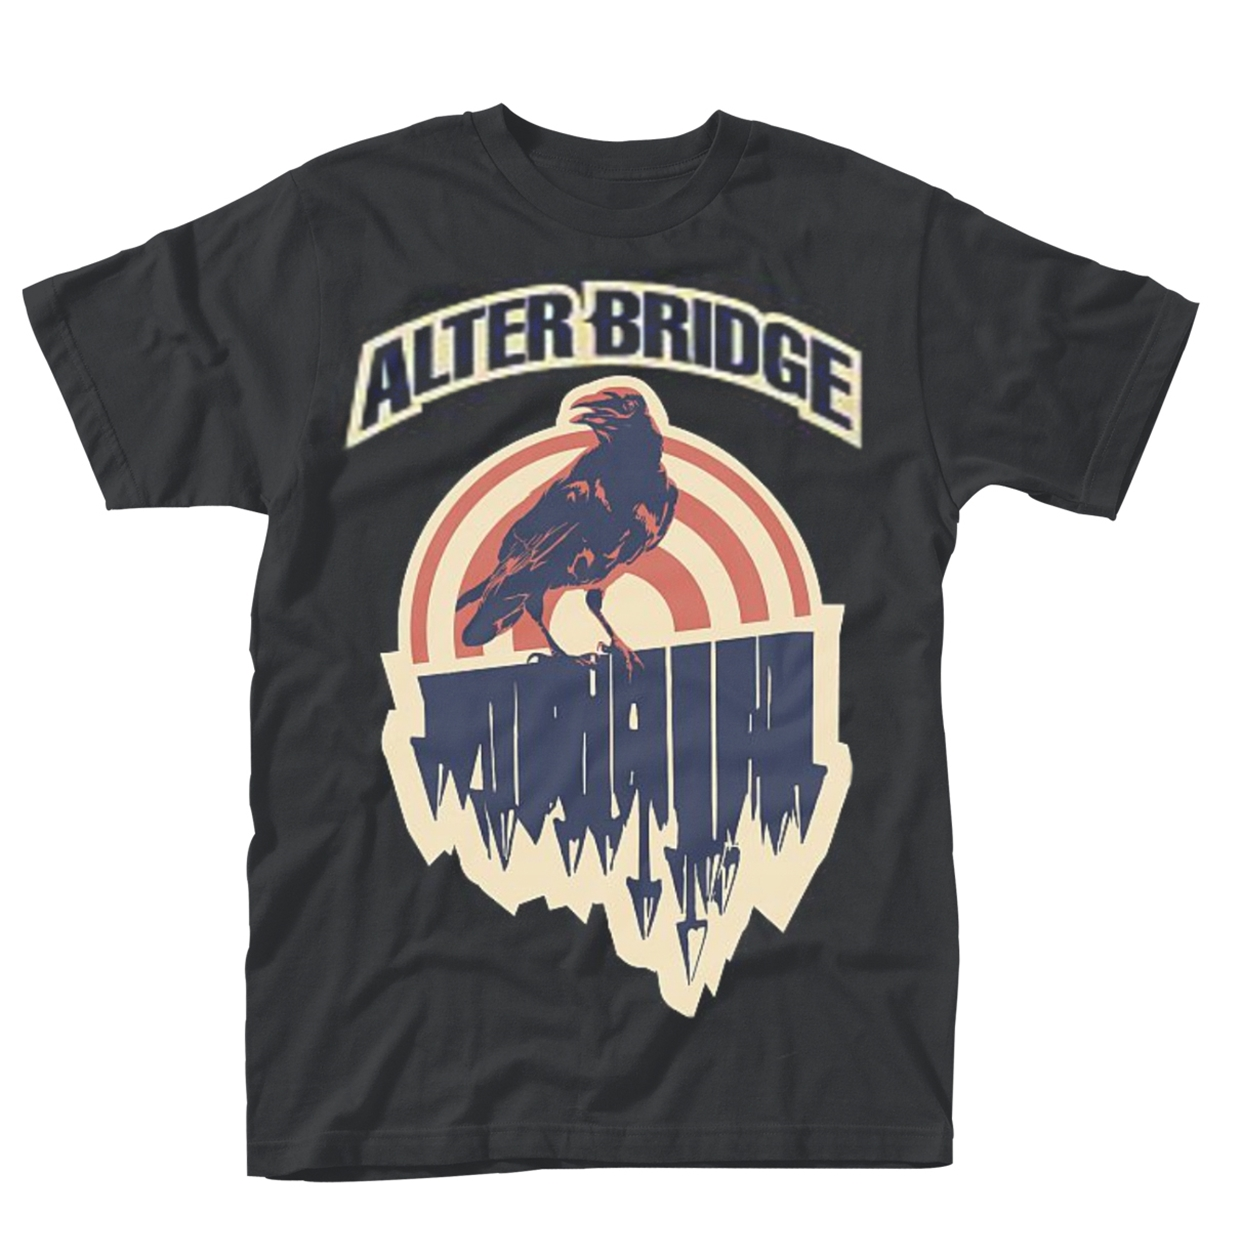 Alter Bridge Black Crow